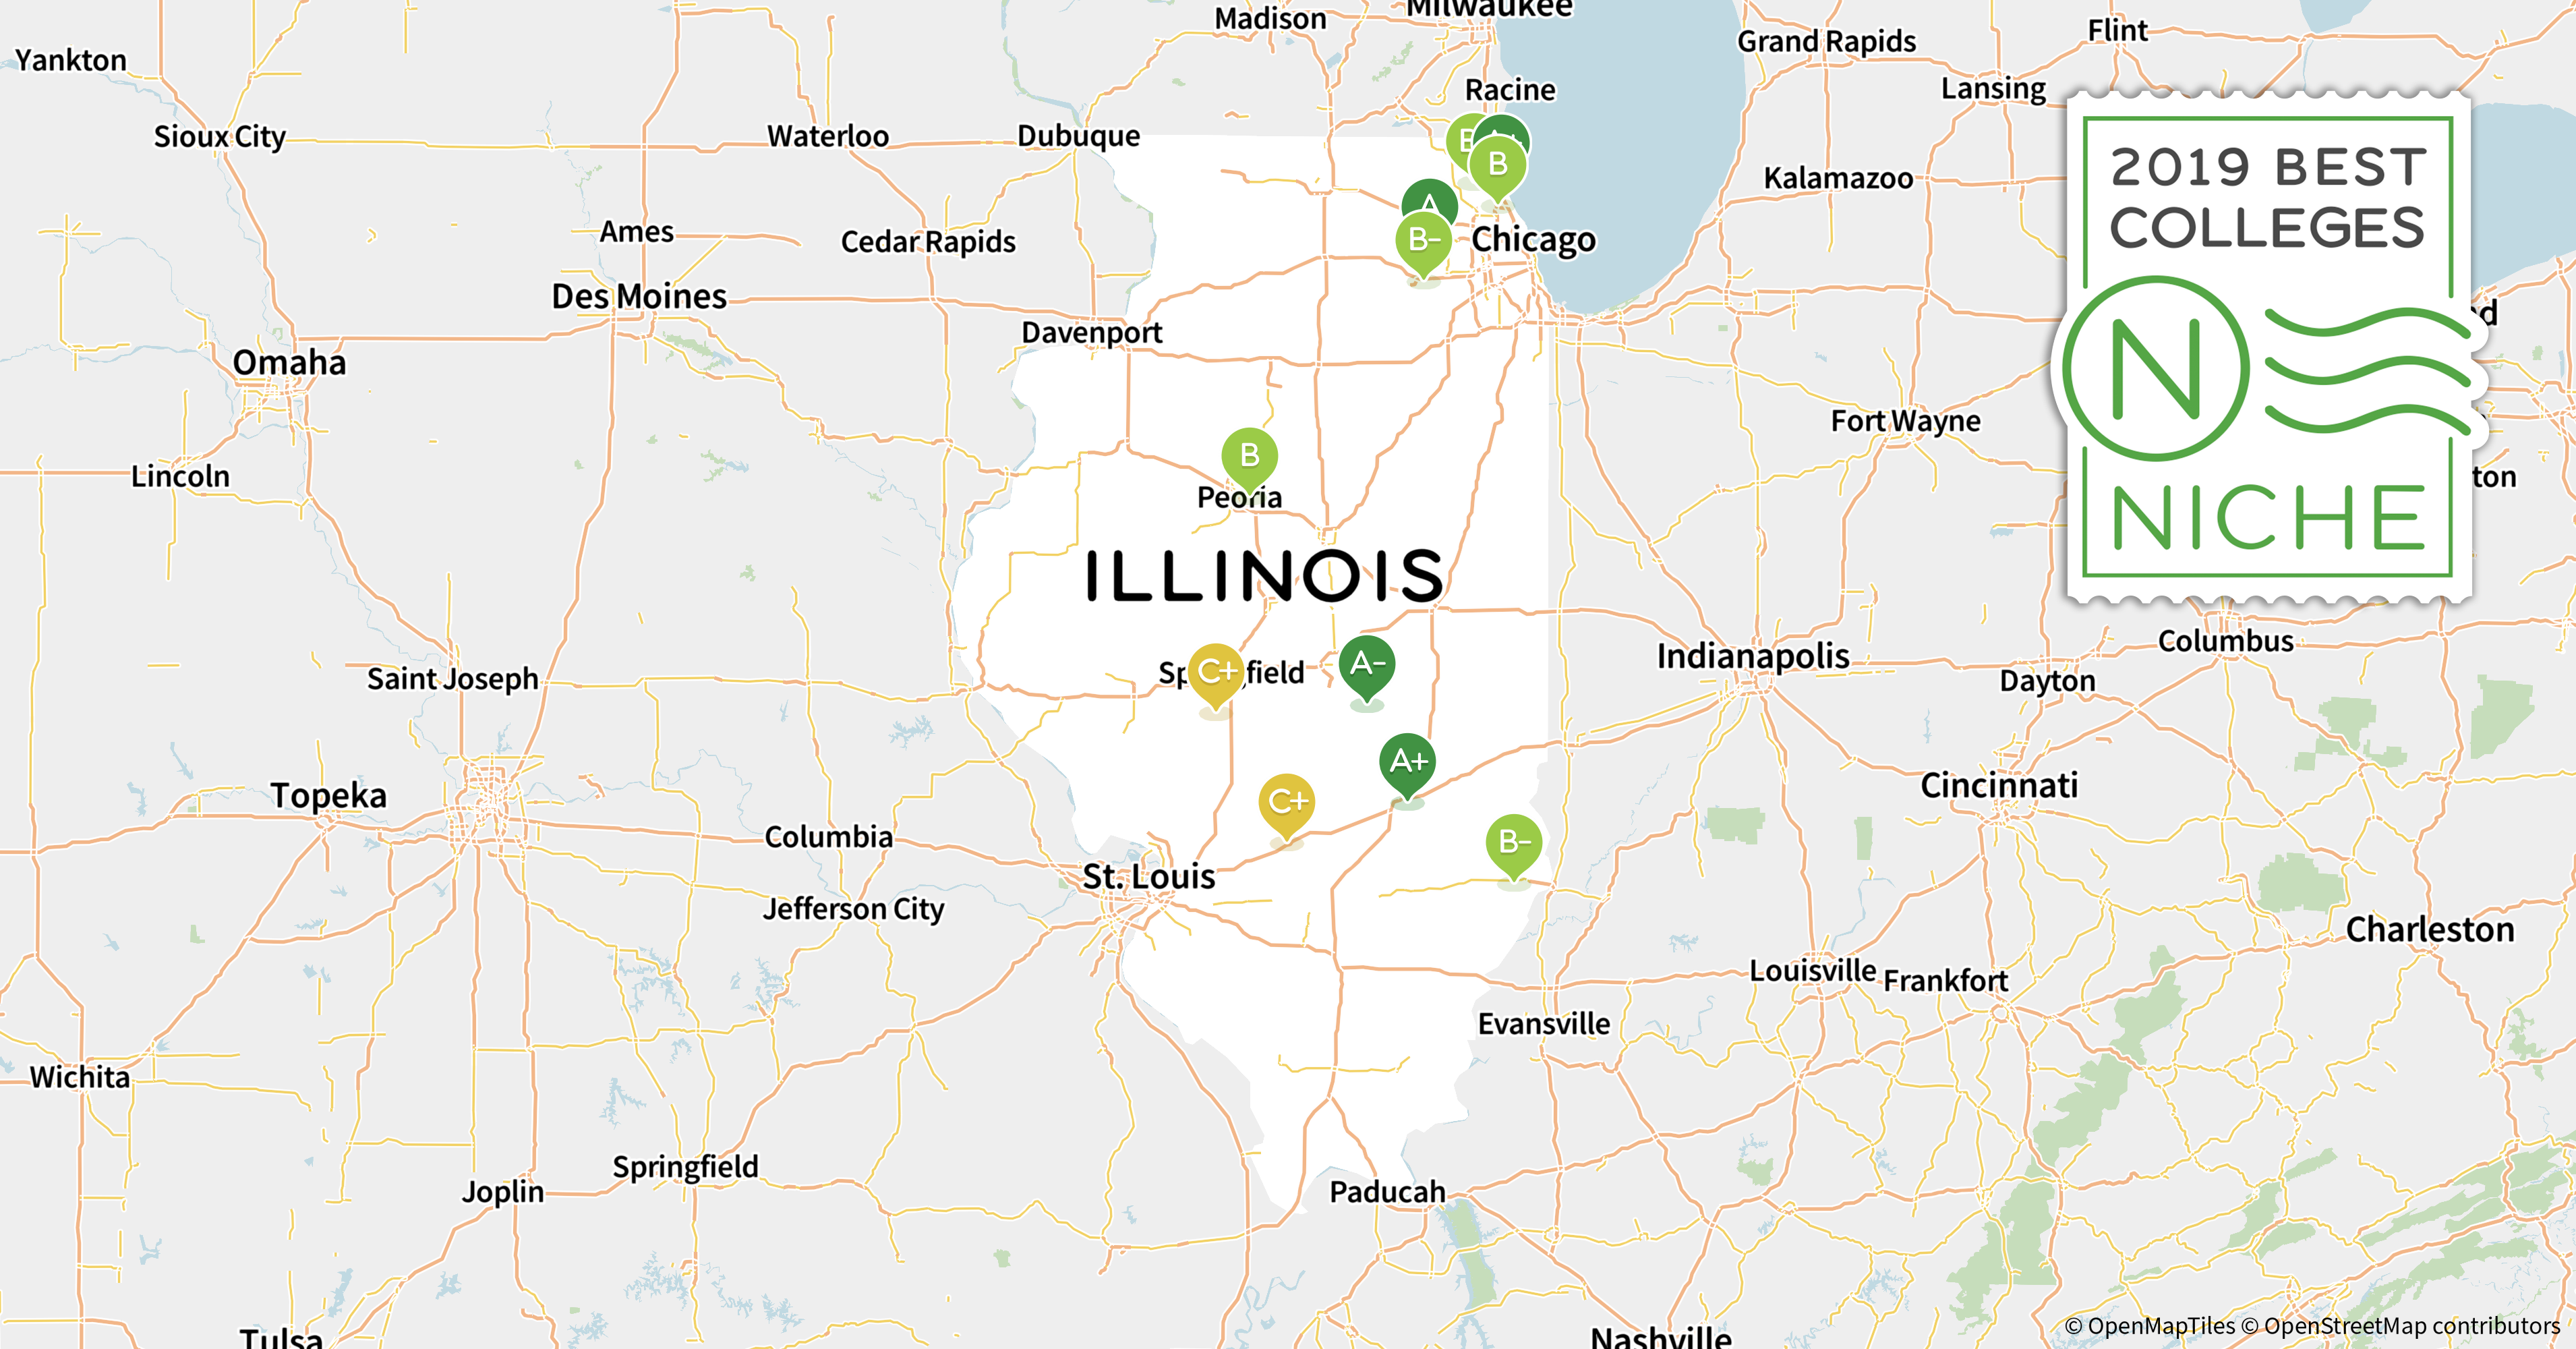 University Of Illinois Map 2019 Best Colleges in Illinois   Niche